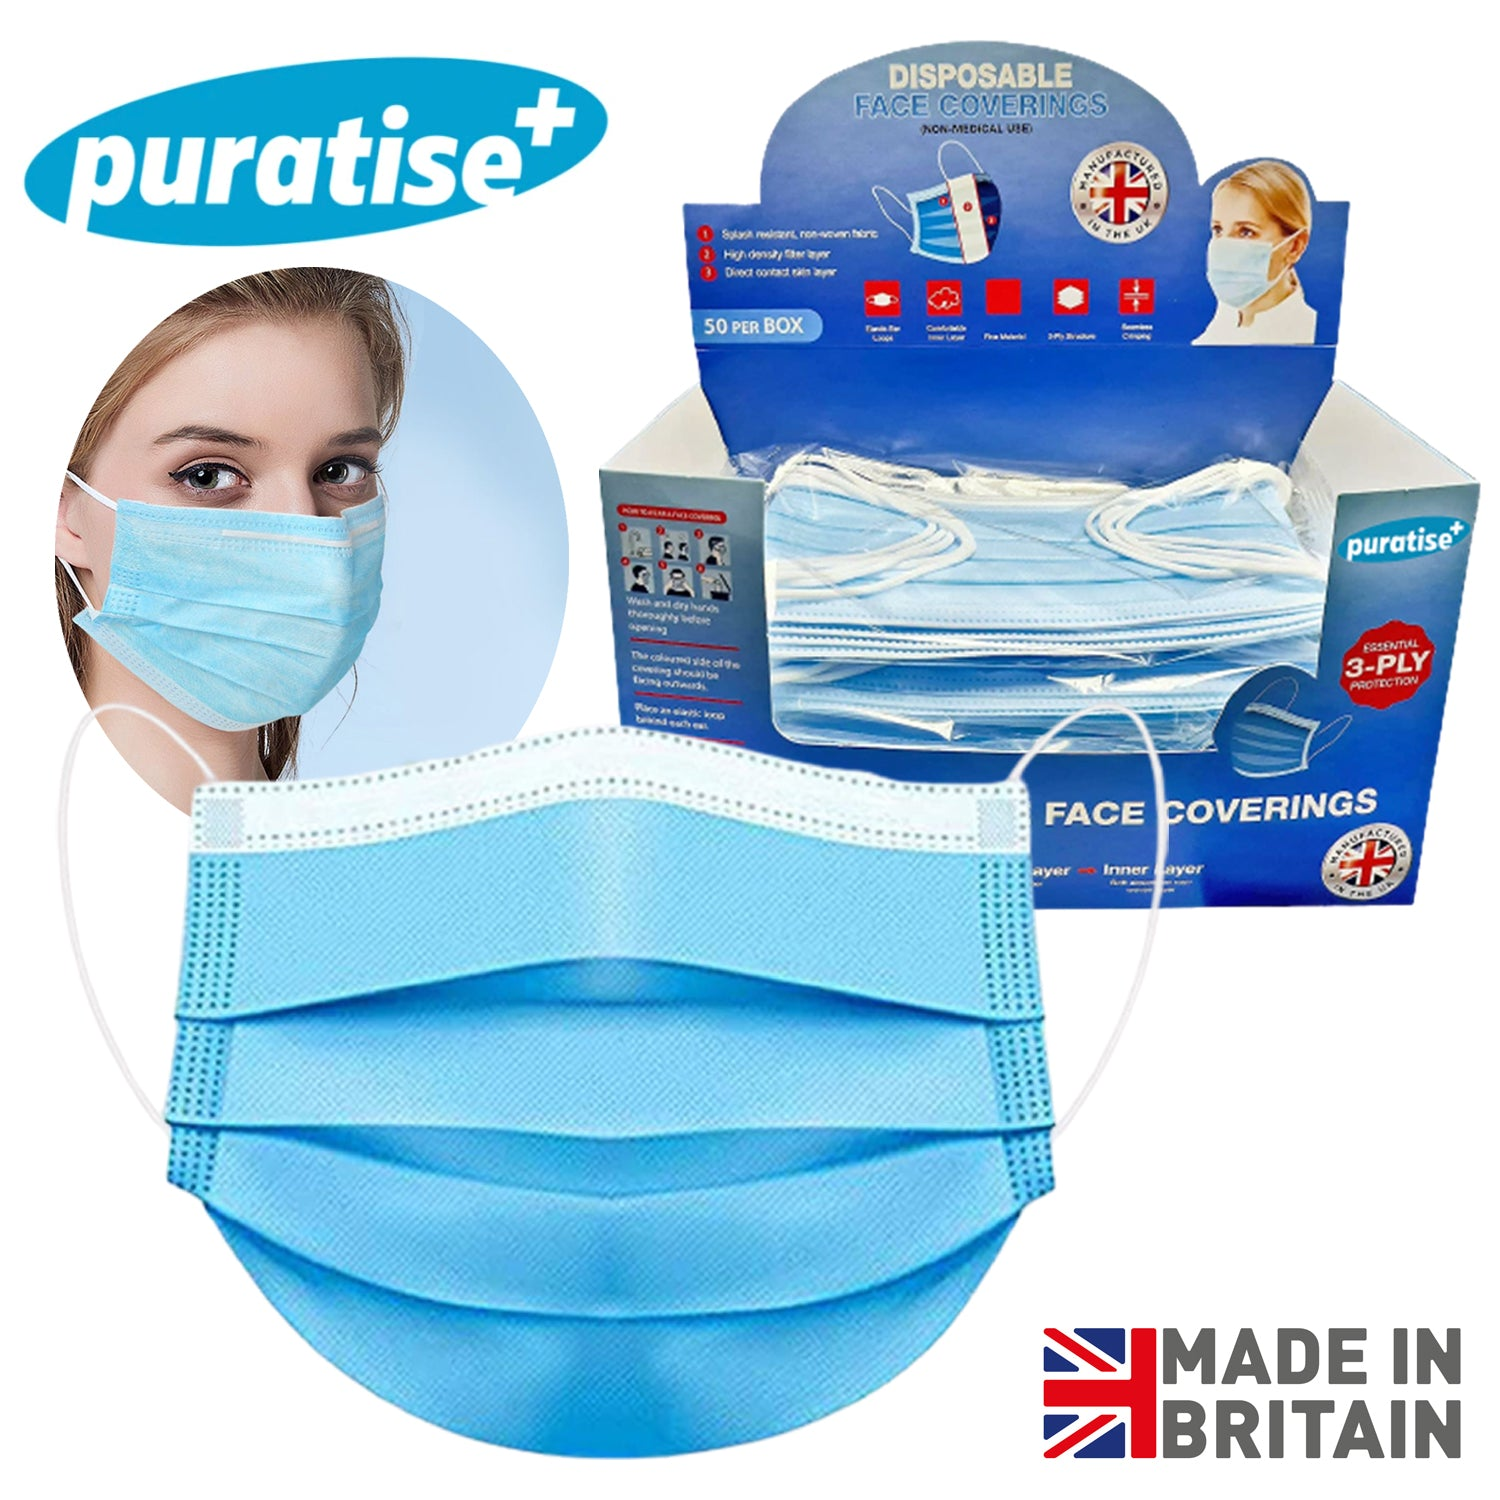 Puratise Disposable 3 Ply Face Masks- 50 Per Box- Made in the UK, Work Safety Protective Equipment by My Wholesale Warehouse